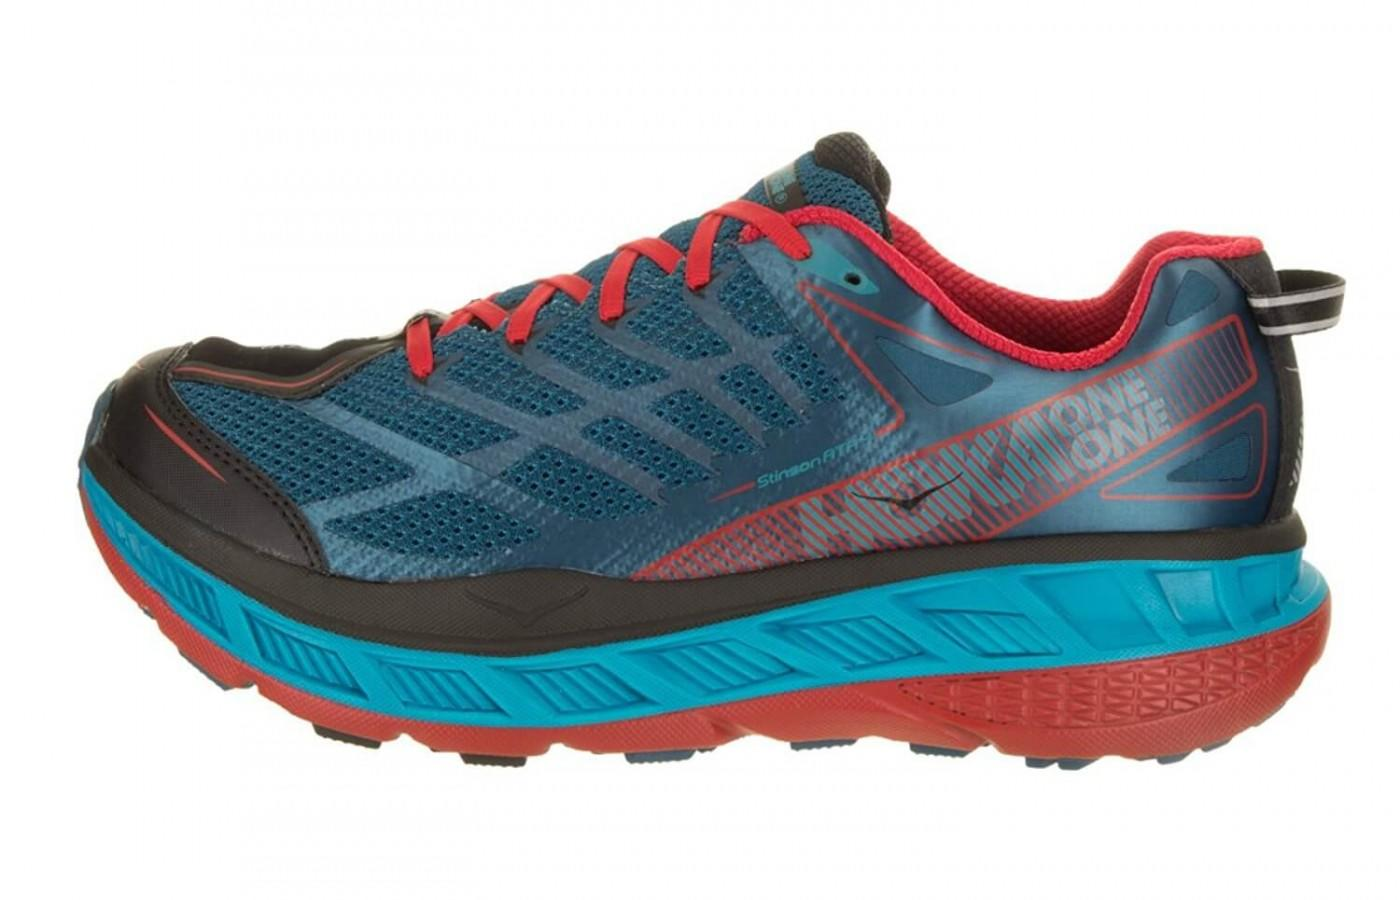 The signature thicker midsole provides added stability and support for the runner.